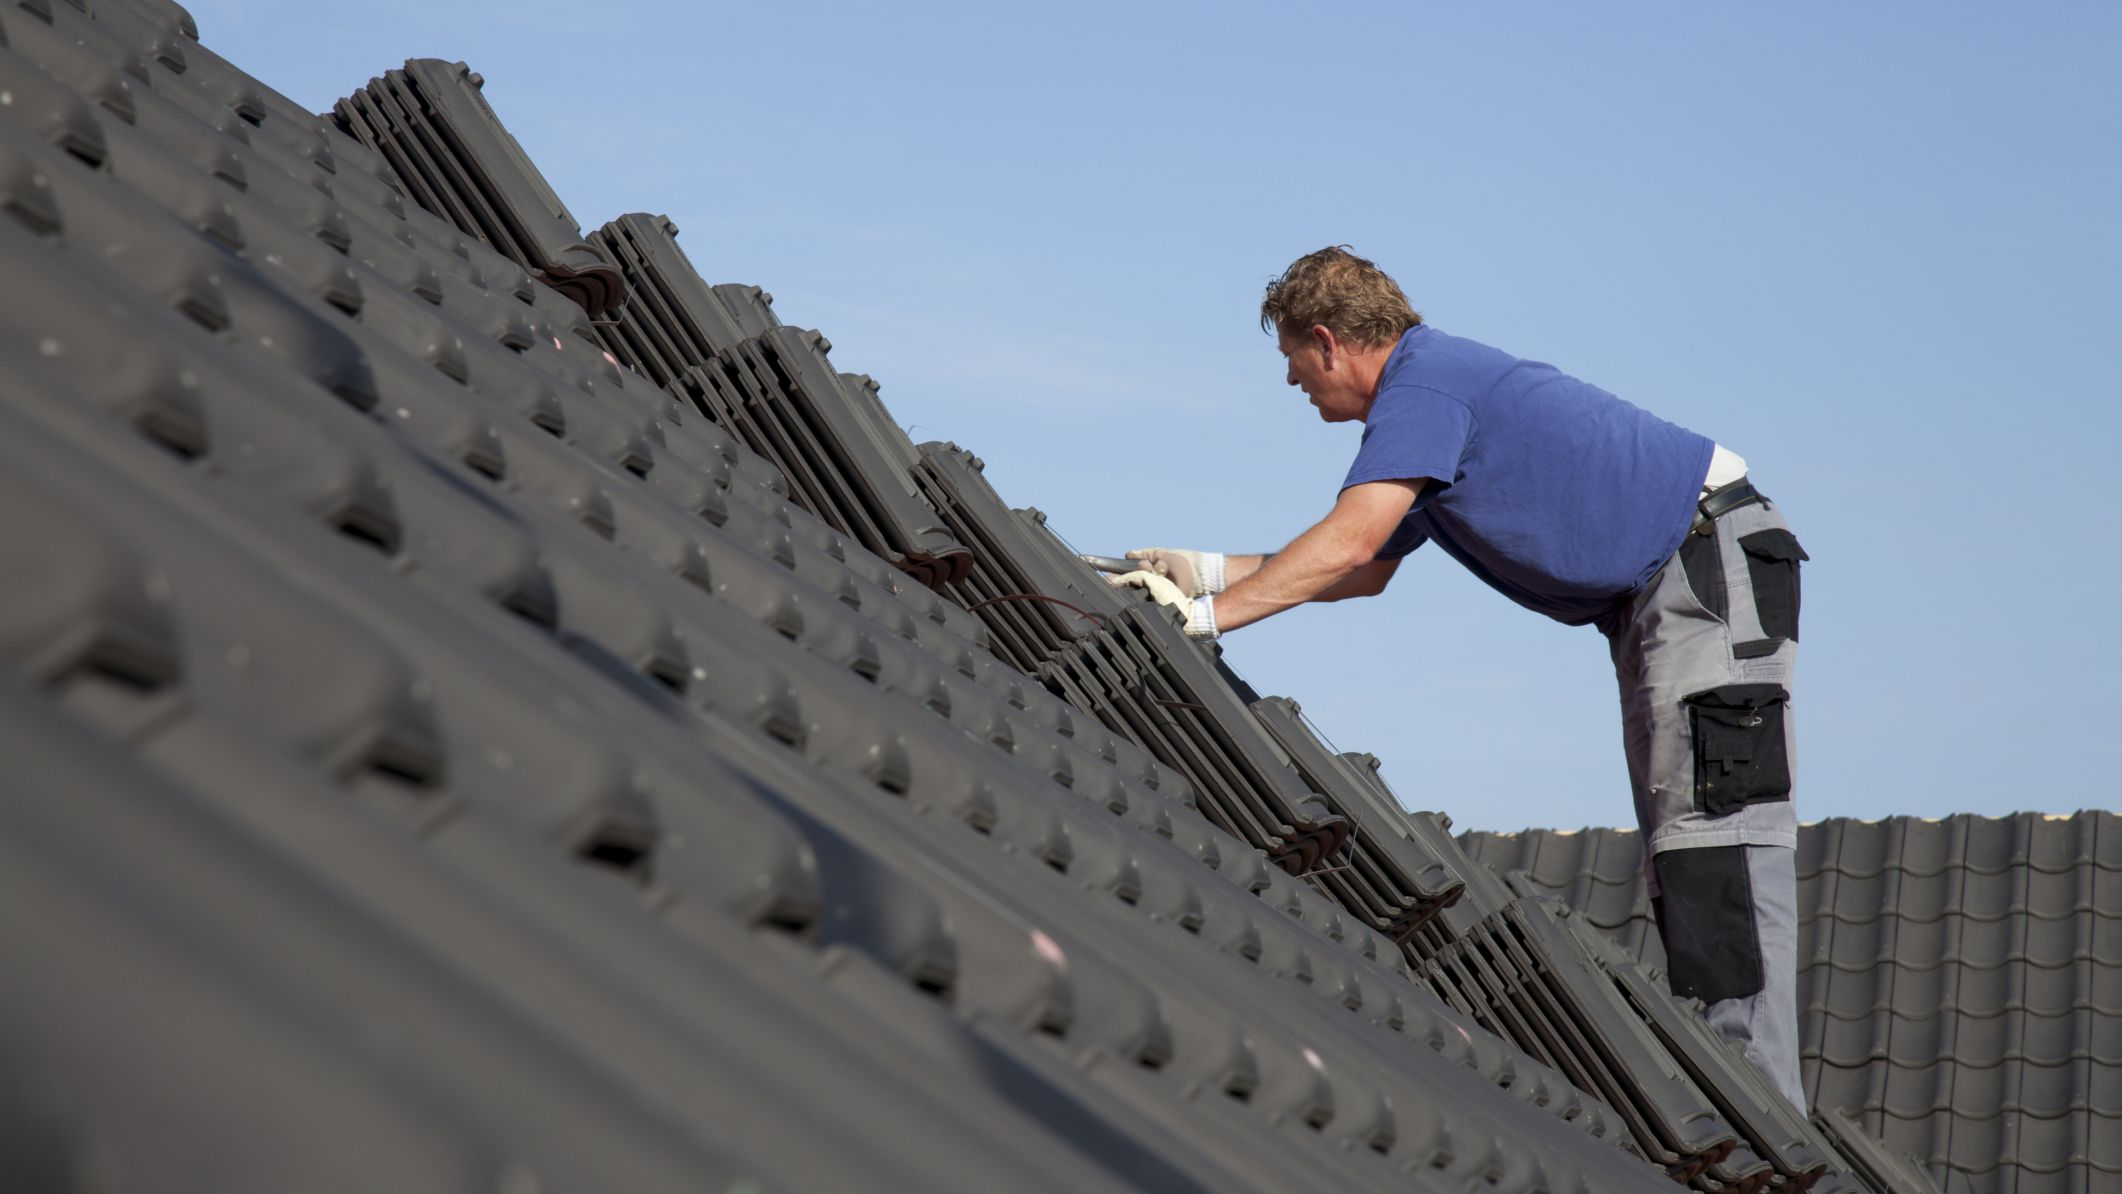 Roof Shingles – Additional Shingles Needed To Counter Wastage And Costs Involved